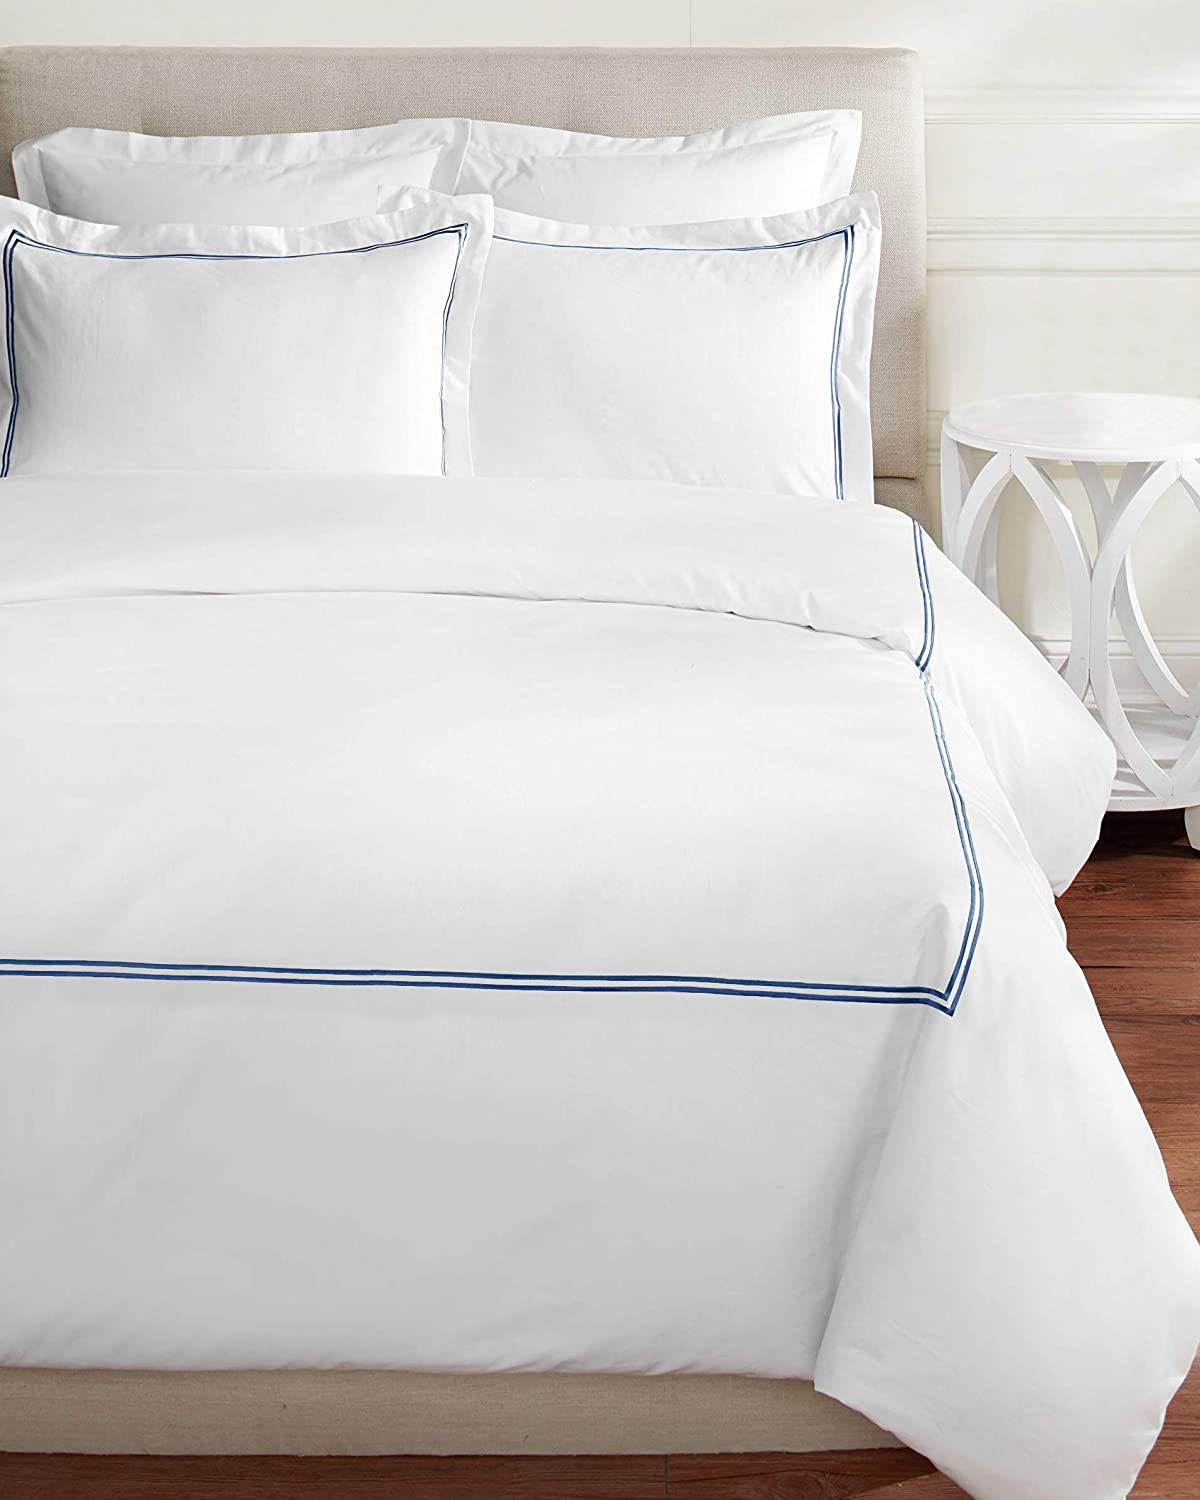 Melange Home 600 Thread Count Sateen 100% Cotton 2 Stripe Embroidery Duvet Set, Twin, Navy on White